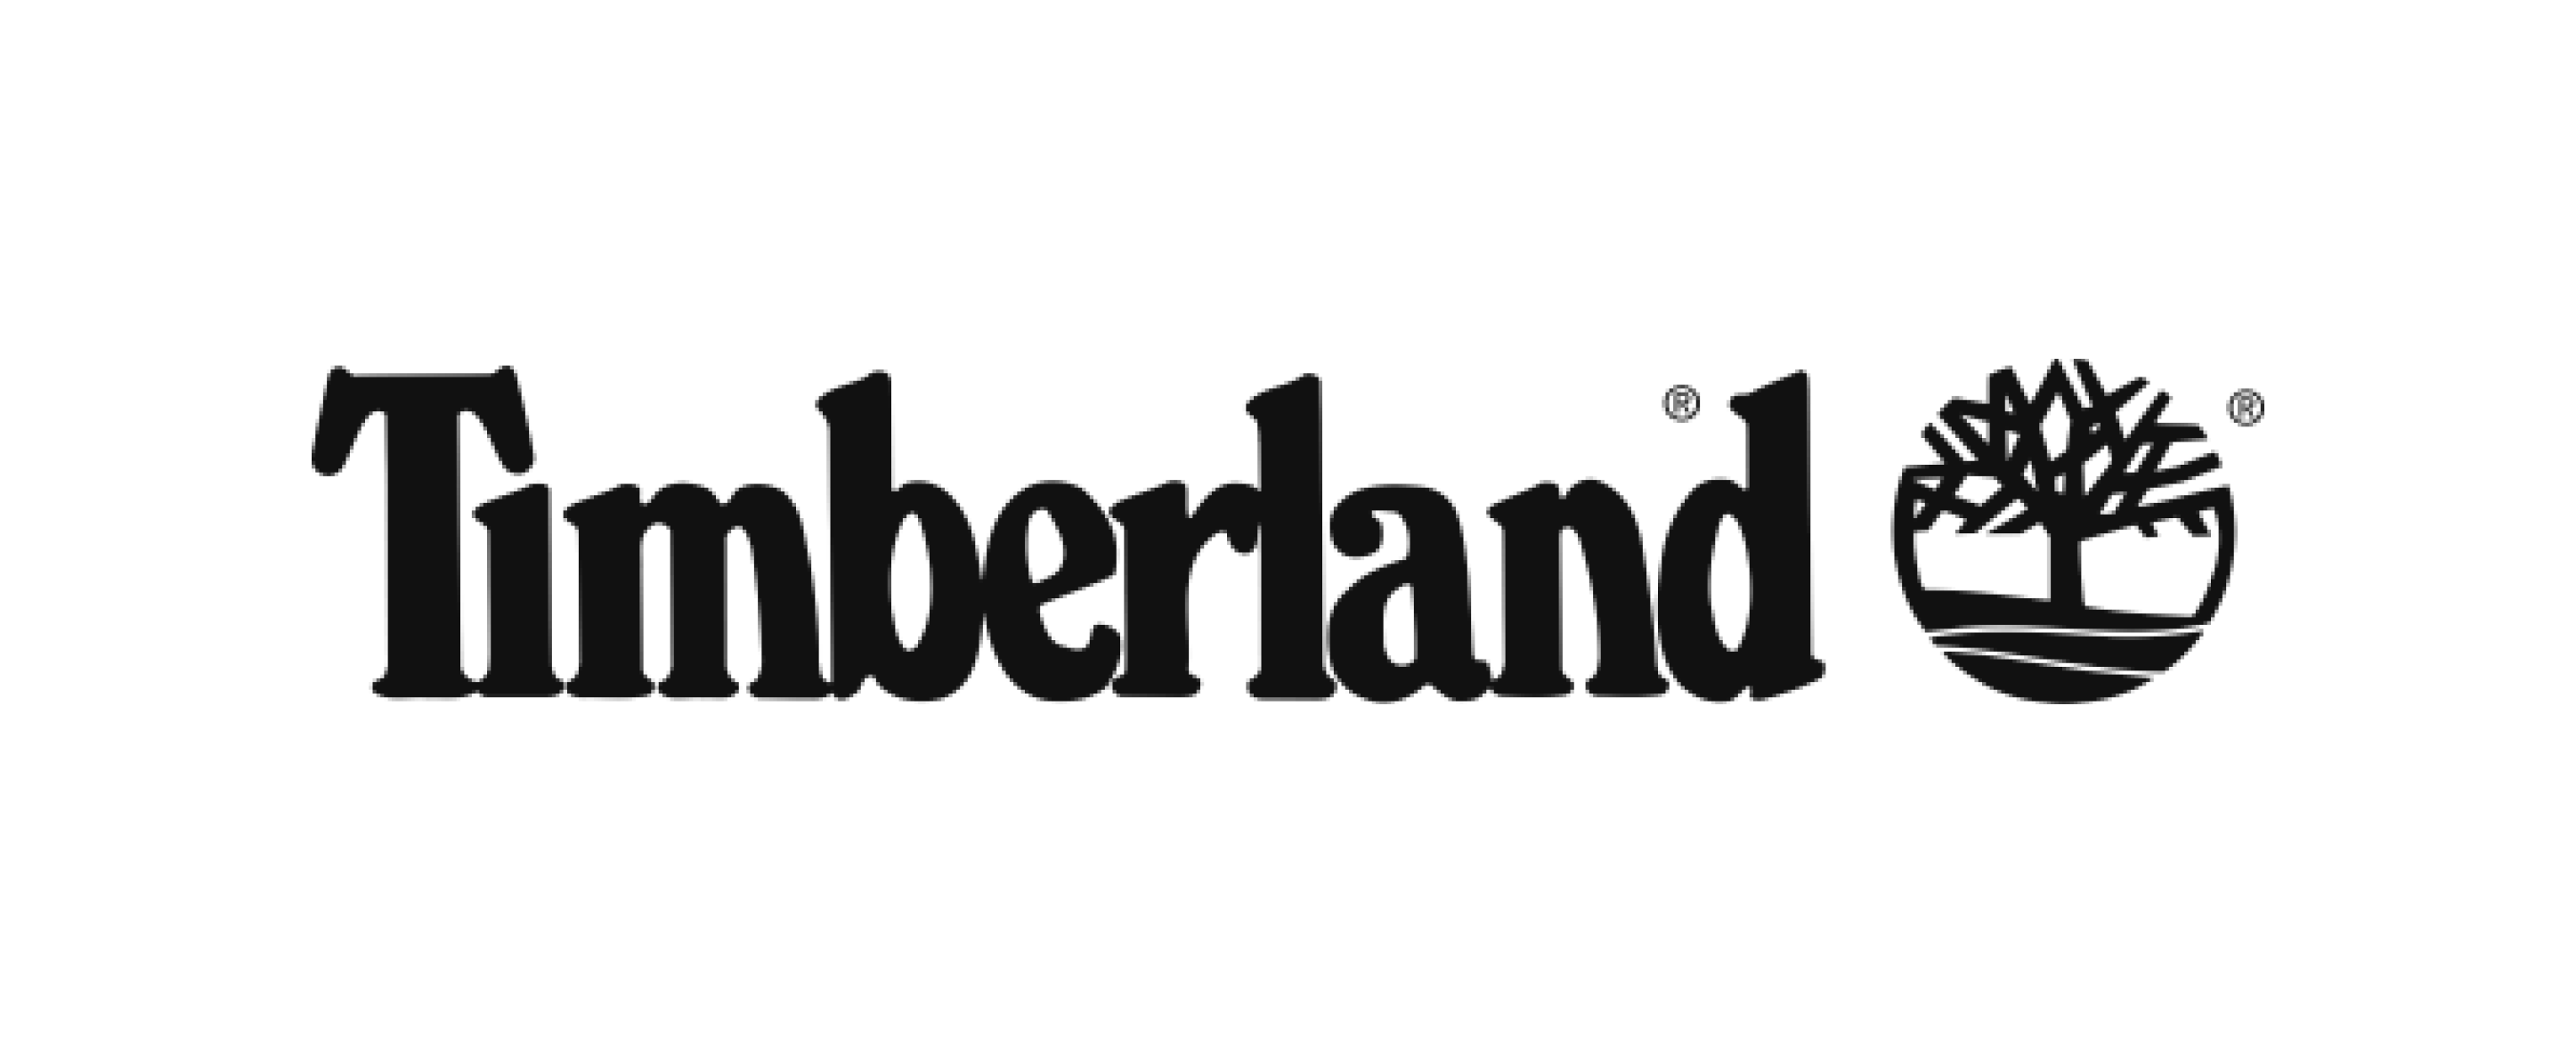 Timberland -Responsibility - Making Things Better